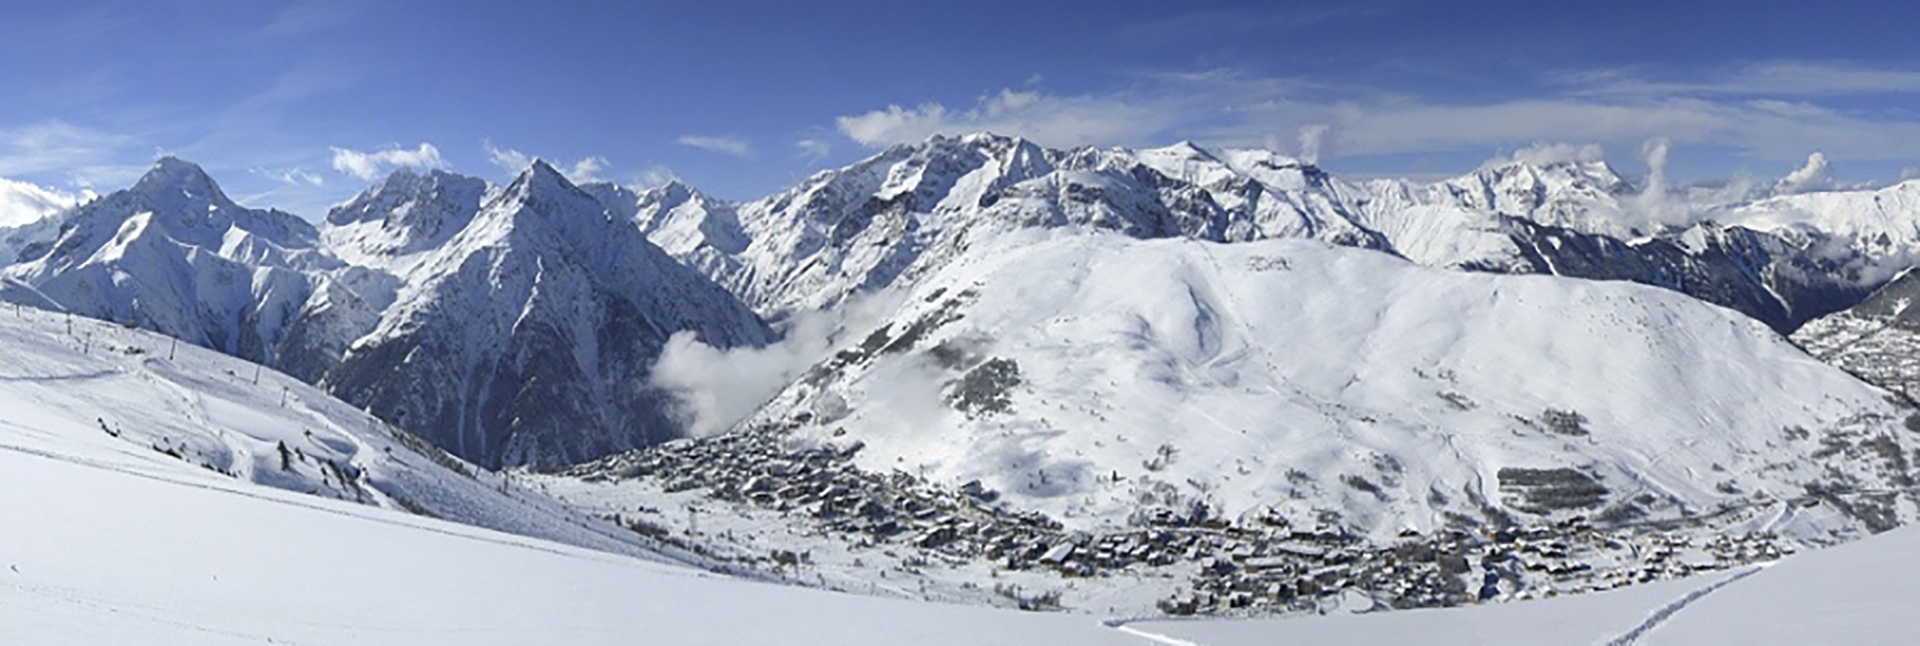 Mountain View of Les Deux Alpes